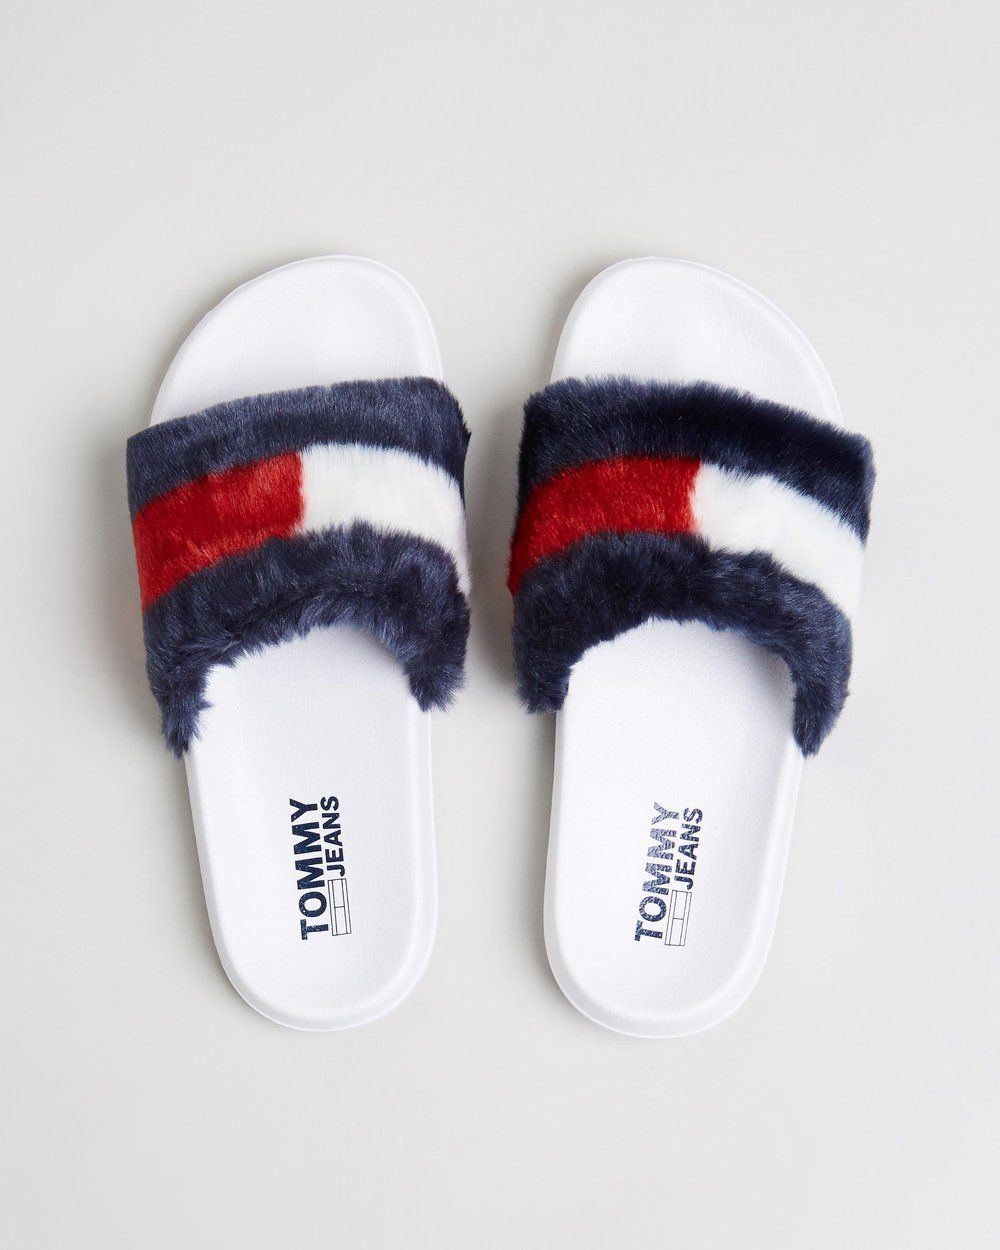 19a0a8d9f1 Buy Funny Fur Pool Slides - Women s by Tommy Hilfiger online at THE ICONIC.  Free